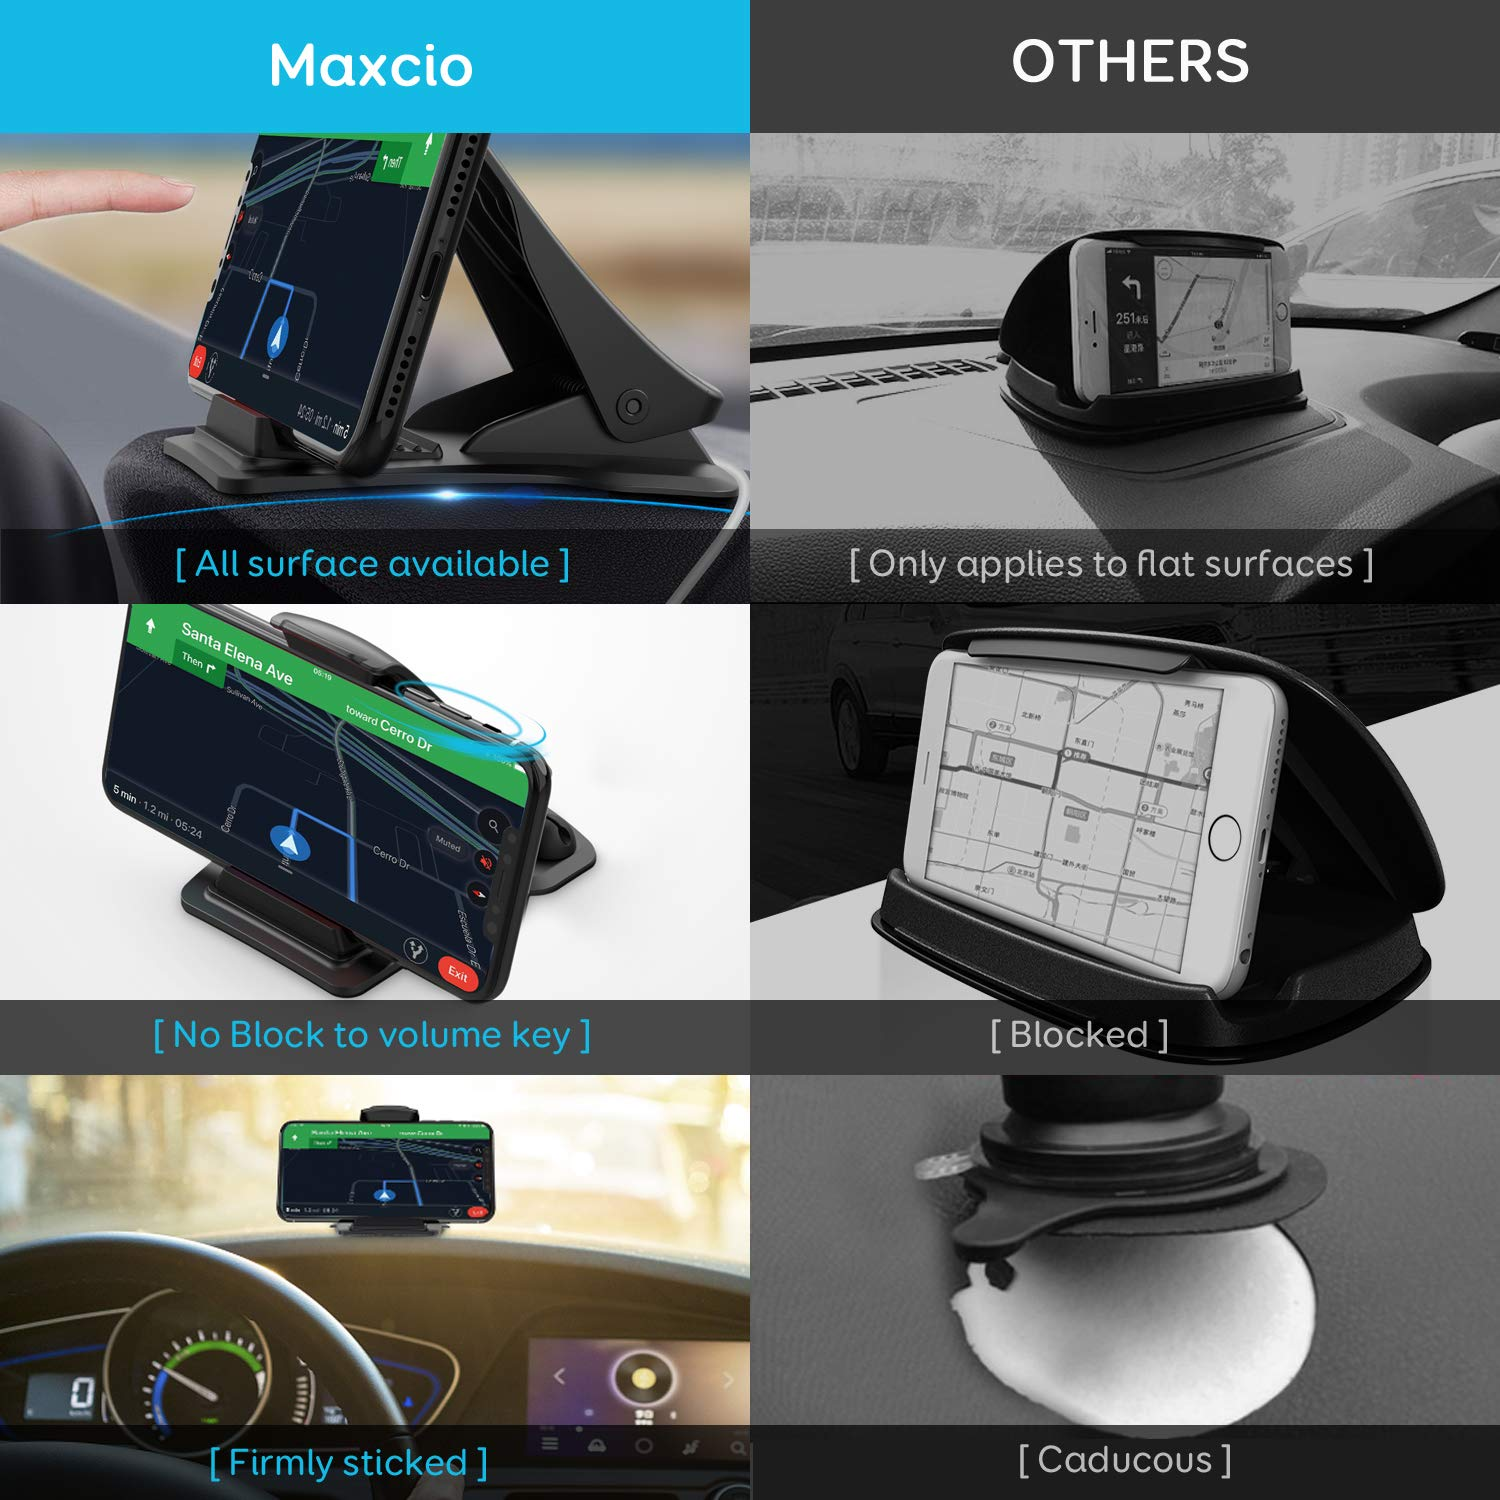 Cell Phone Holder for Car Maxcio Car Phone Mount with 4 Cable Clip Organizer Samsung Galaxy S9//S8//S7 Clip GPS//Cell Phone Holder for Dashboard Dashboard GPS Holder Mounting in Vehicle Anti-Slip Desk Phone Stand for iPhone Xs//8//7//6s Plus